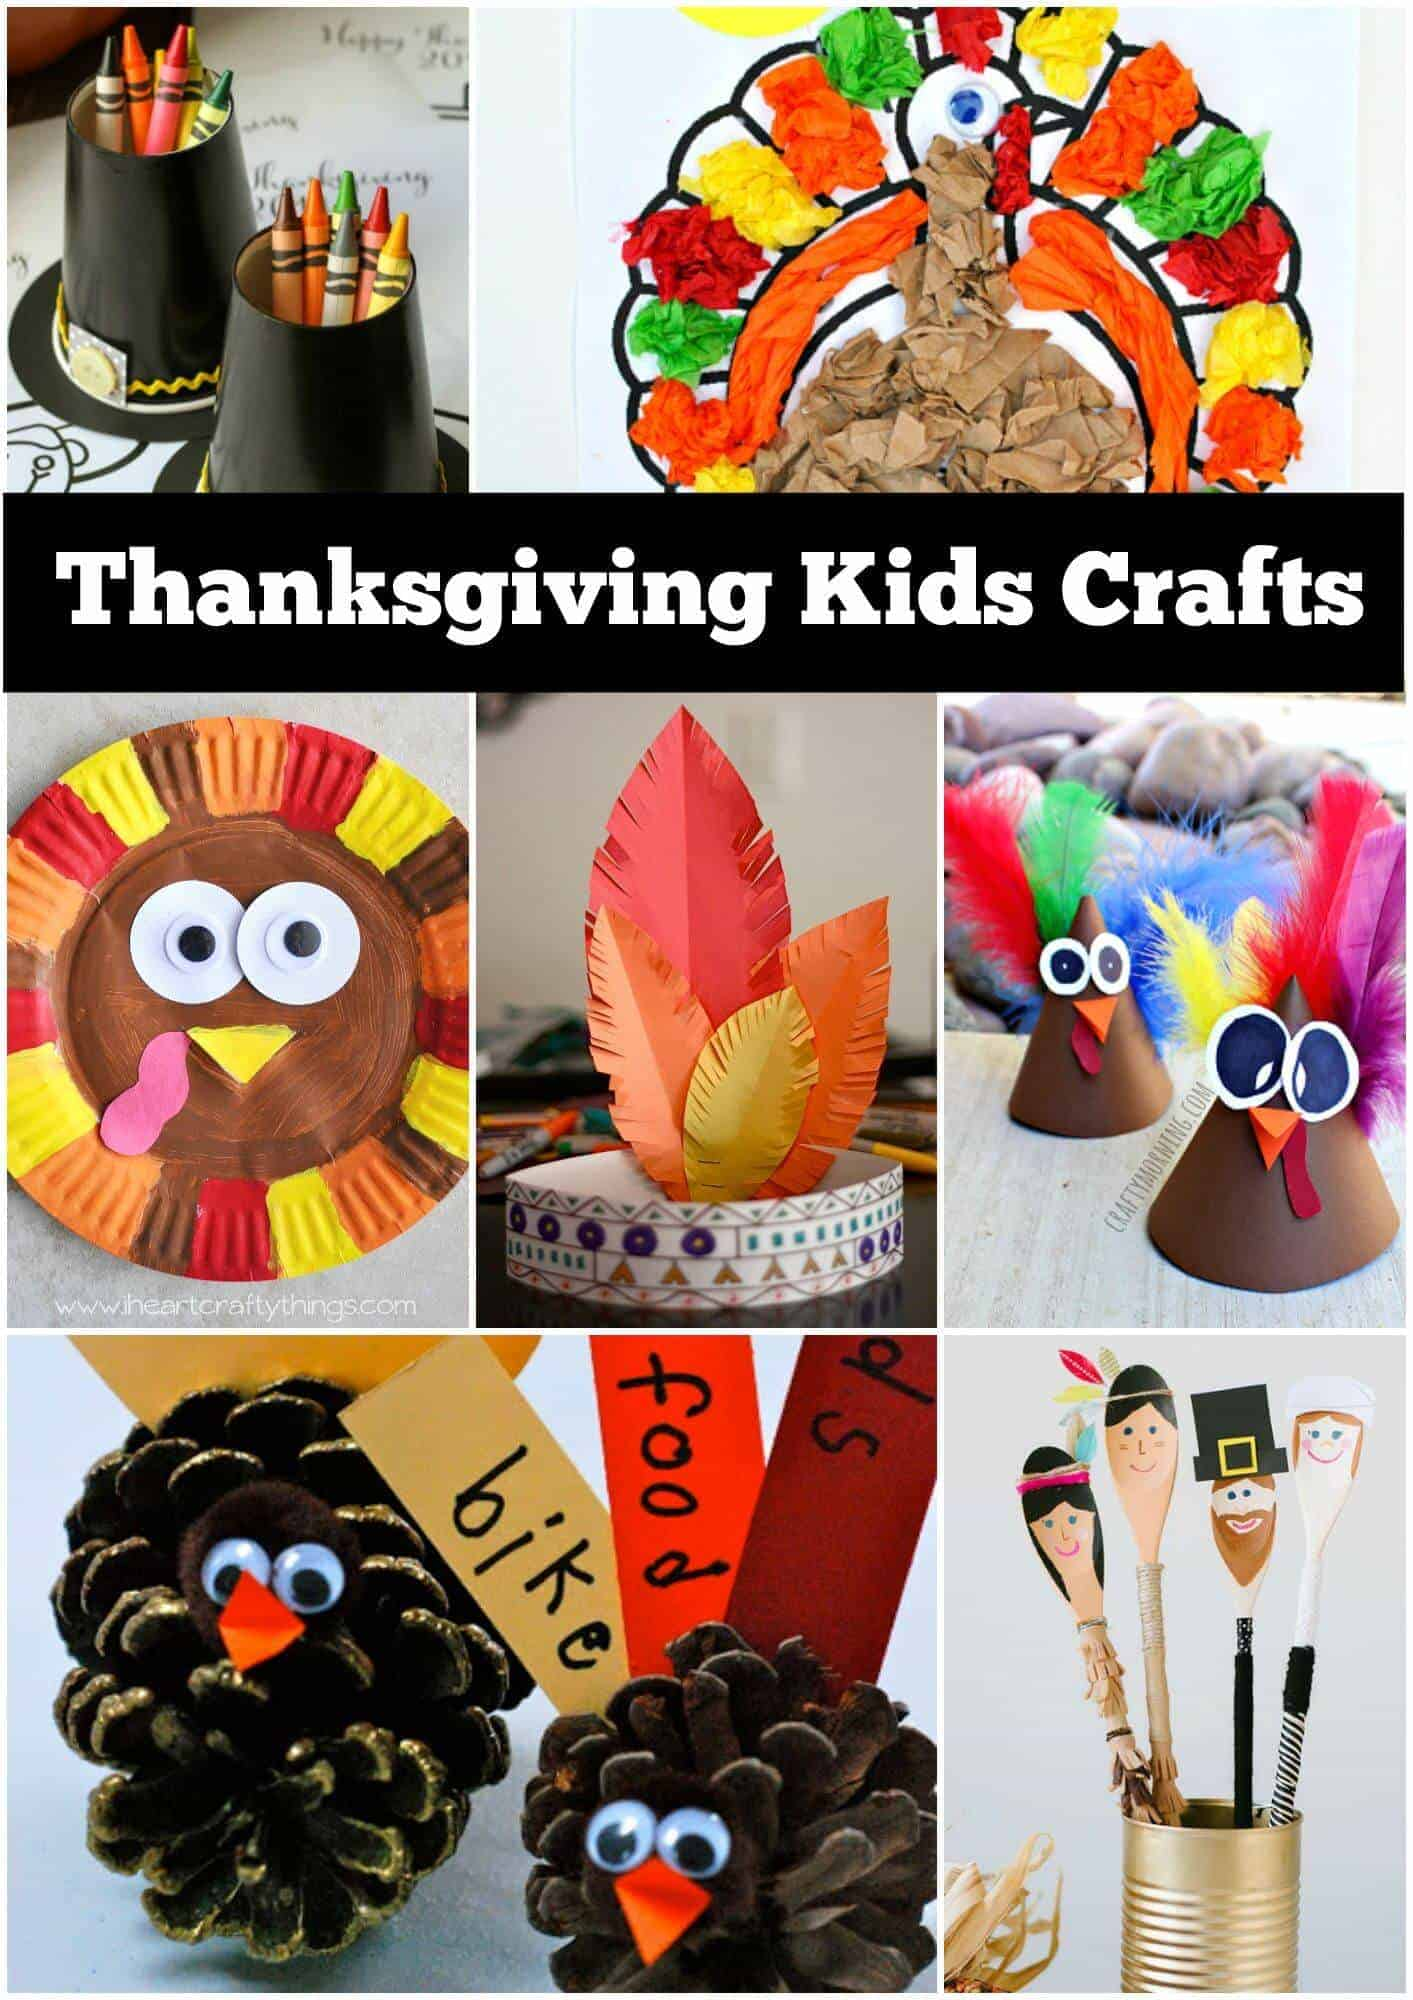 Thanksgiiving Kids Crafts